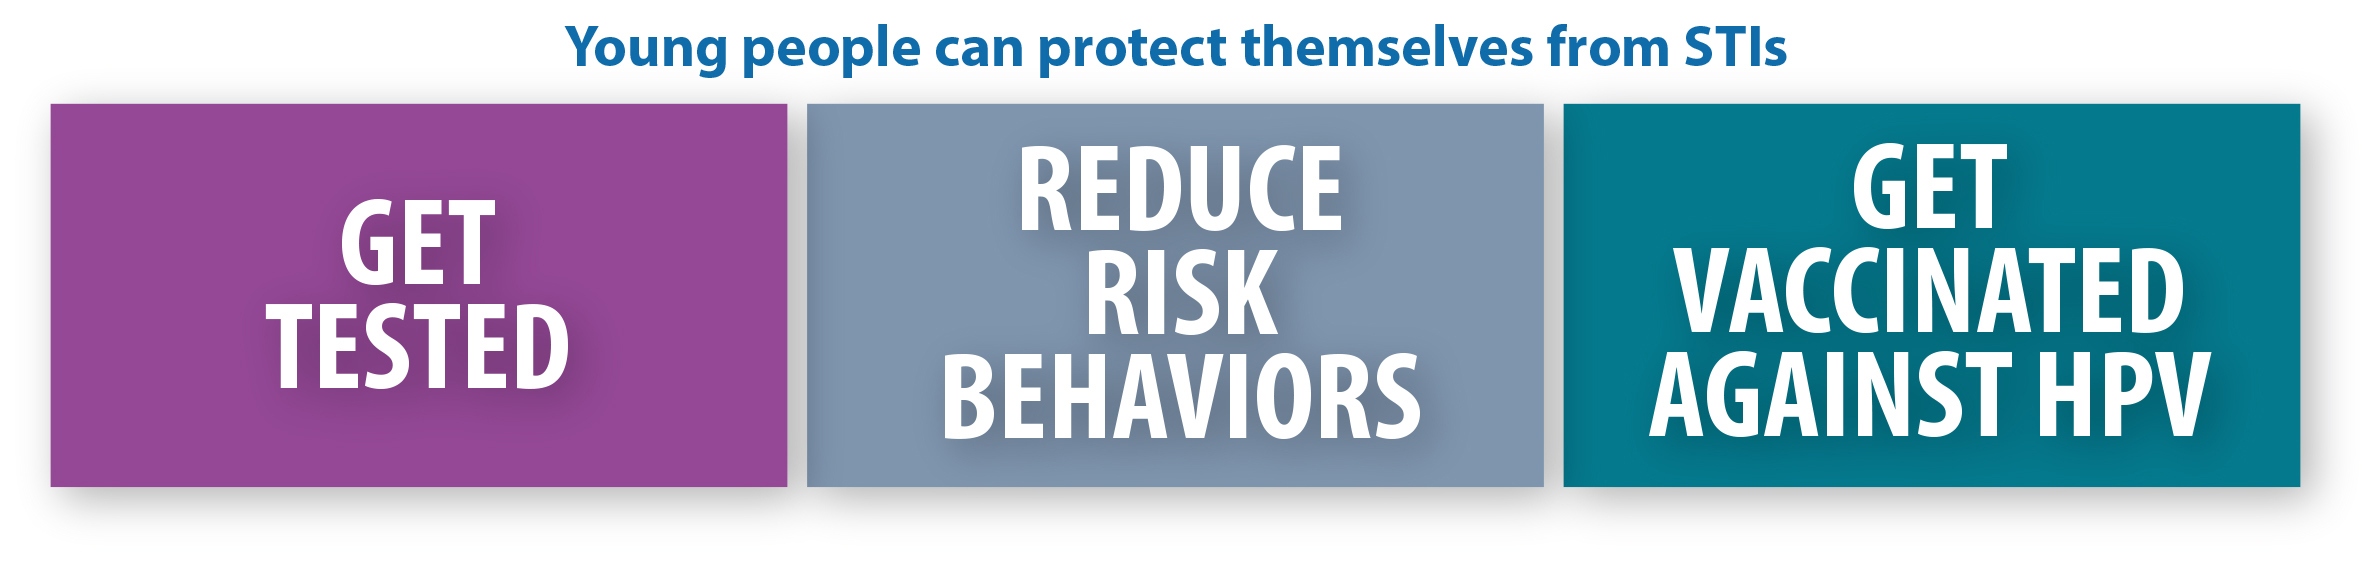 Youth Protection from STIs Graphic